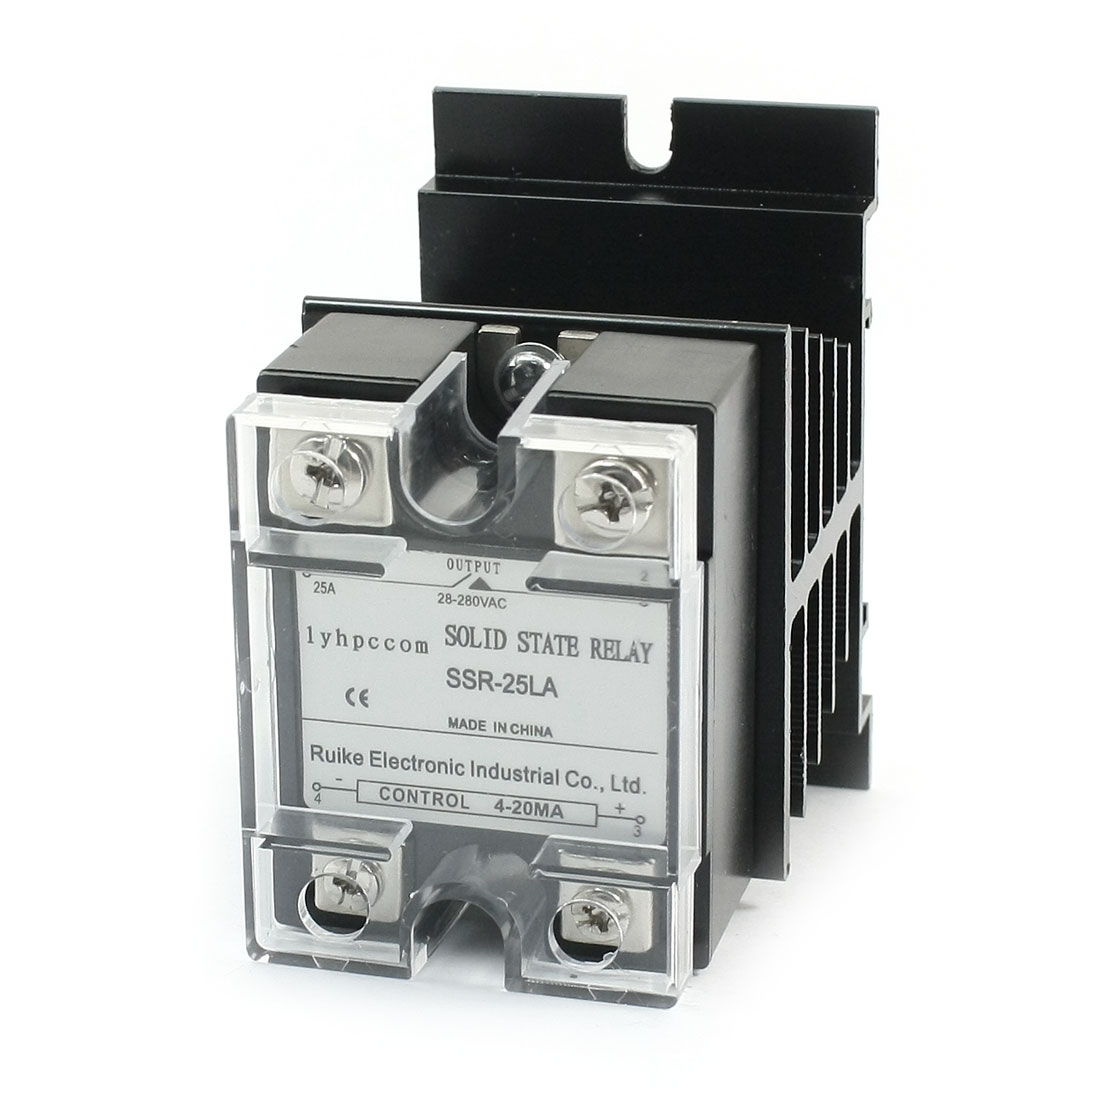 SSR-25LA 4-20mA to AC 28-280V 25A 4 Screw Terminal One Phase Aluminum Heat Sink SSR Solid State Relay